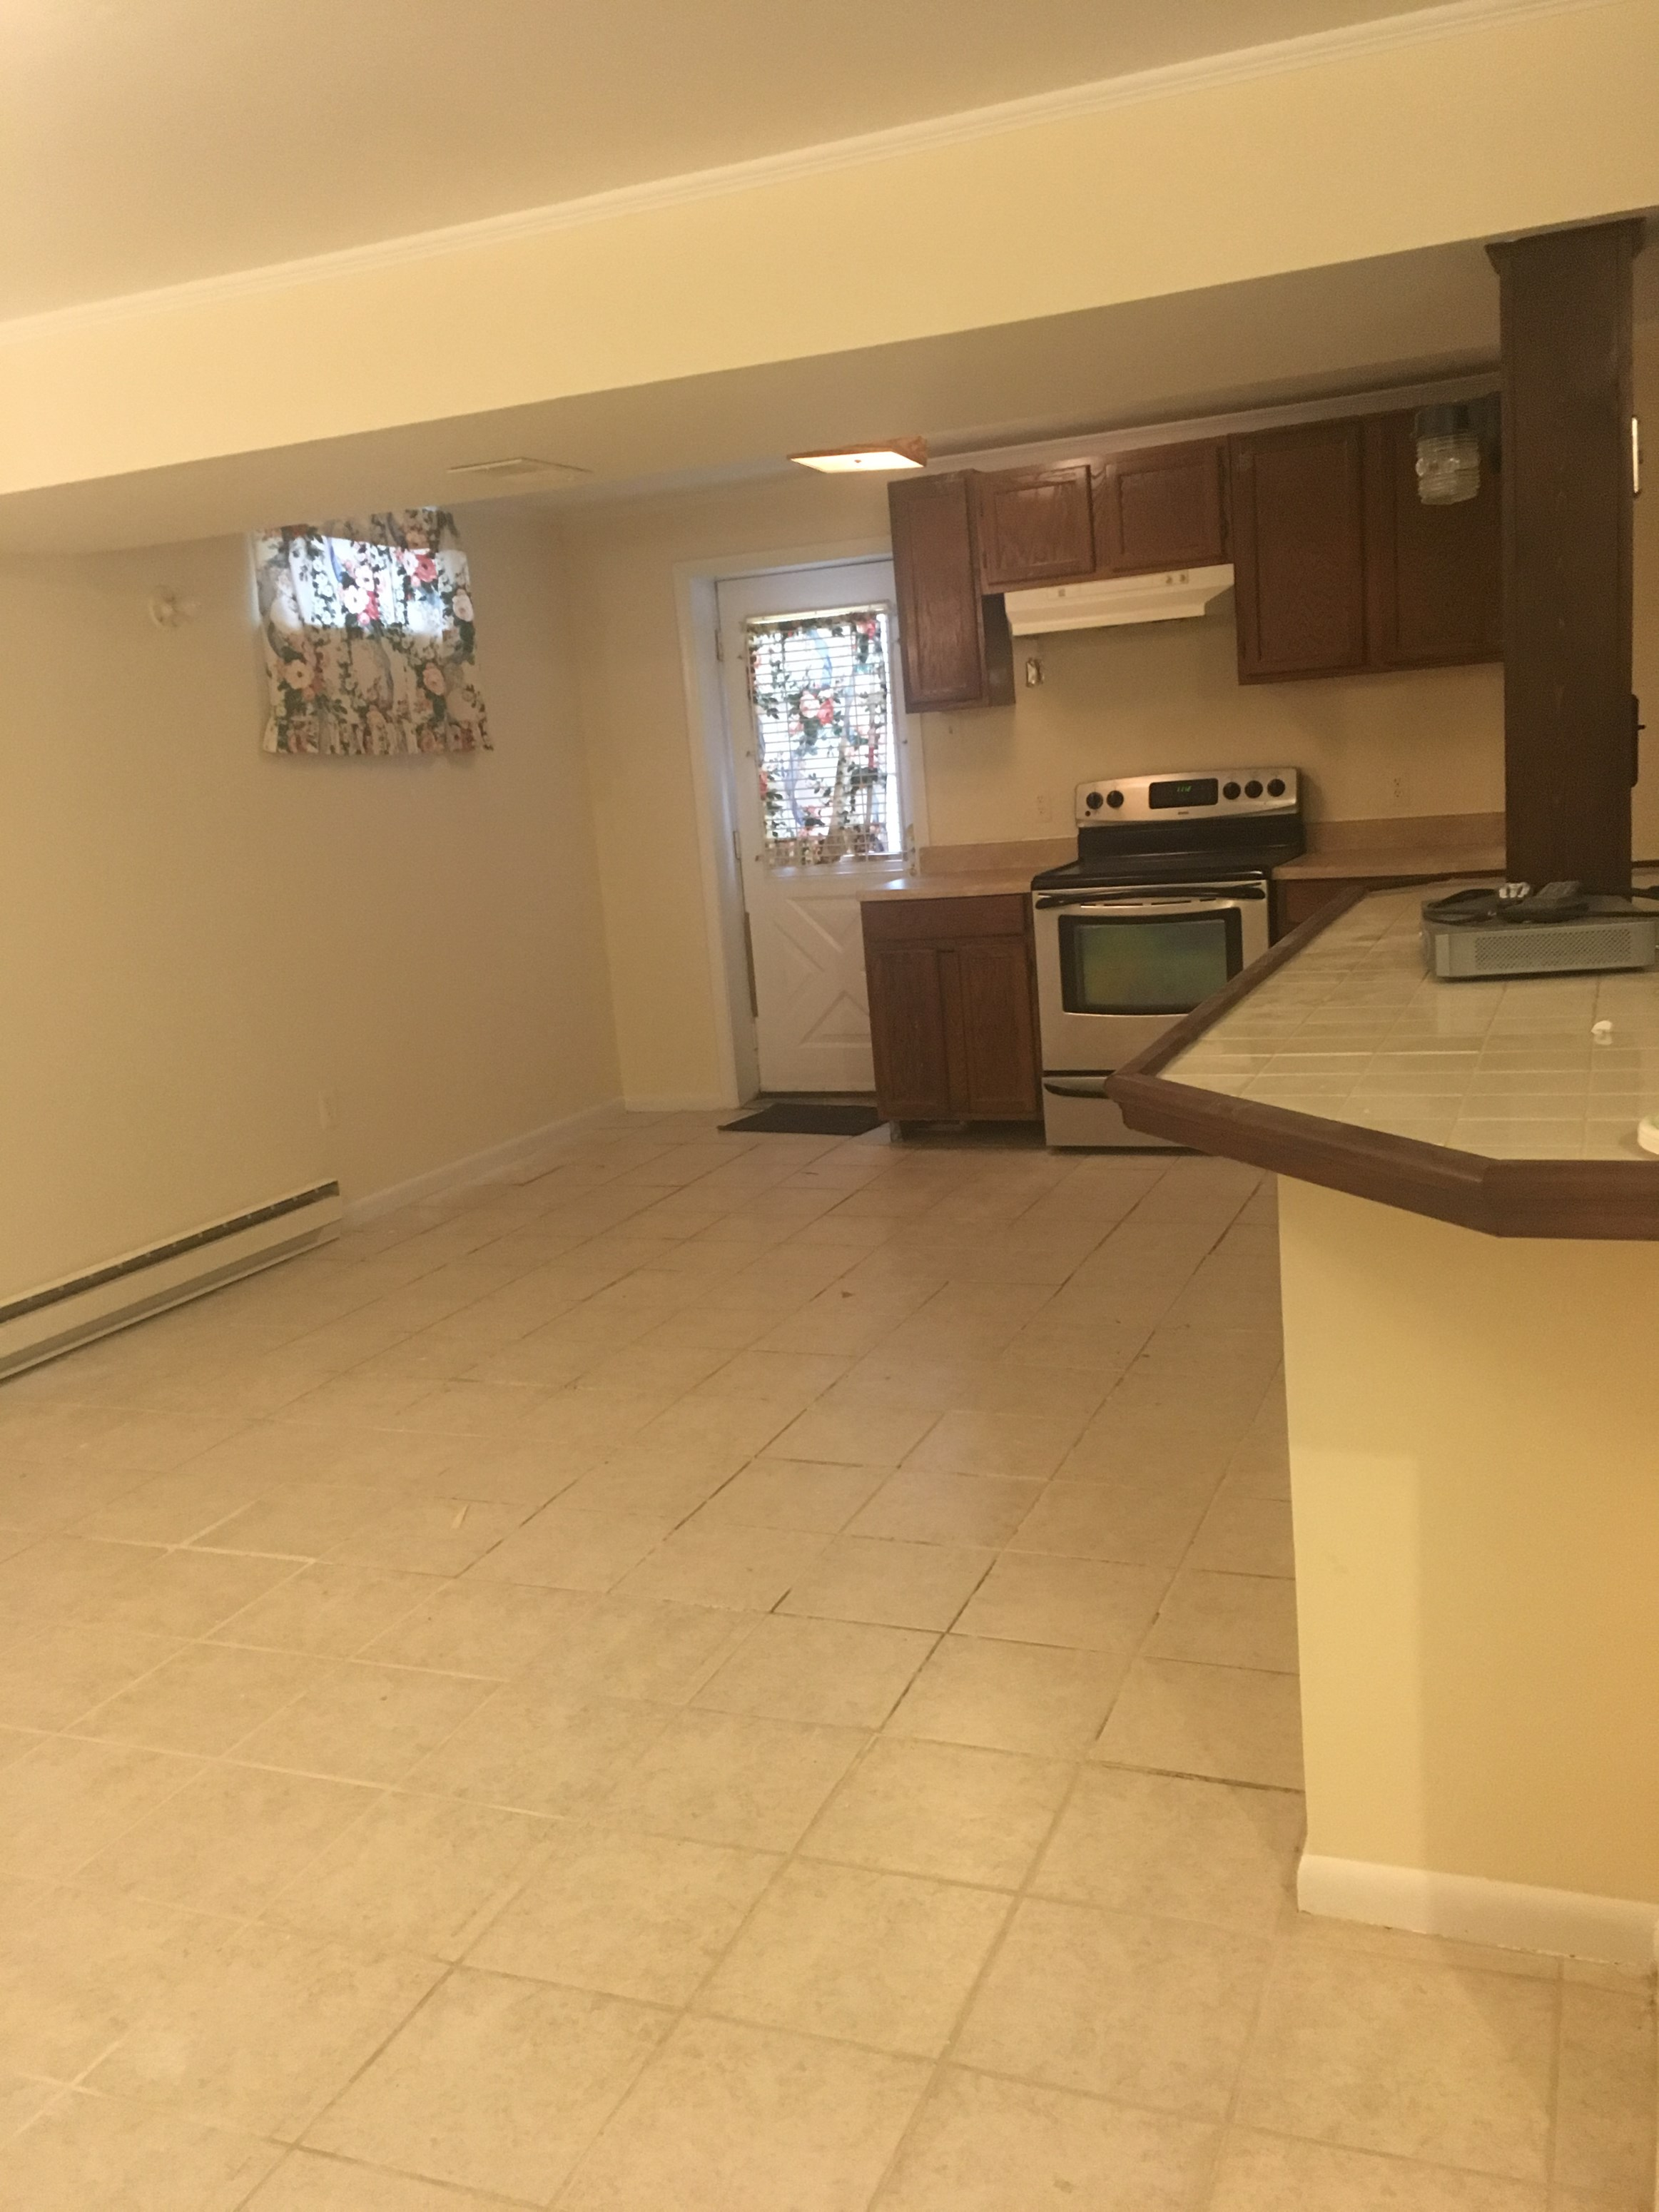 Rooms for Rent in Washington – Apartments Flats mercial Space